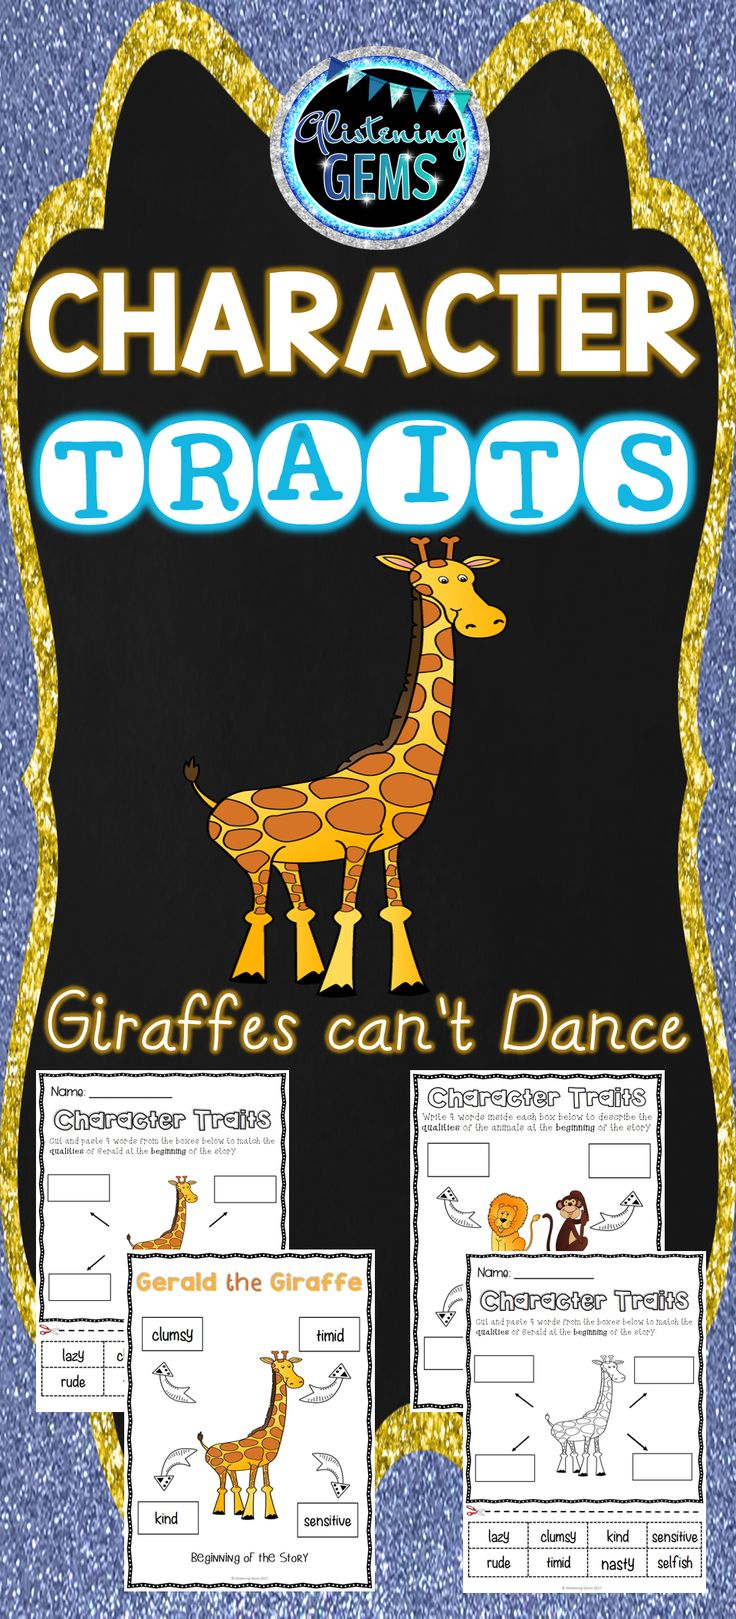 Giraffes Can't Dance Character Trait Activities Pack: Is perfect to use when undertaking units on character traits, narratives or descriptive writing.